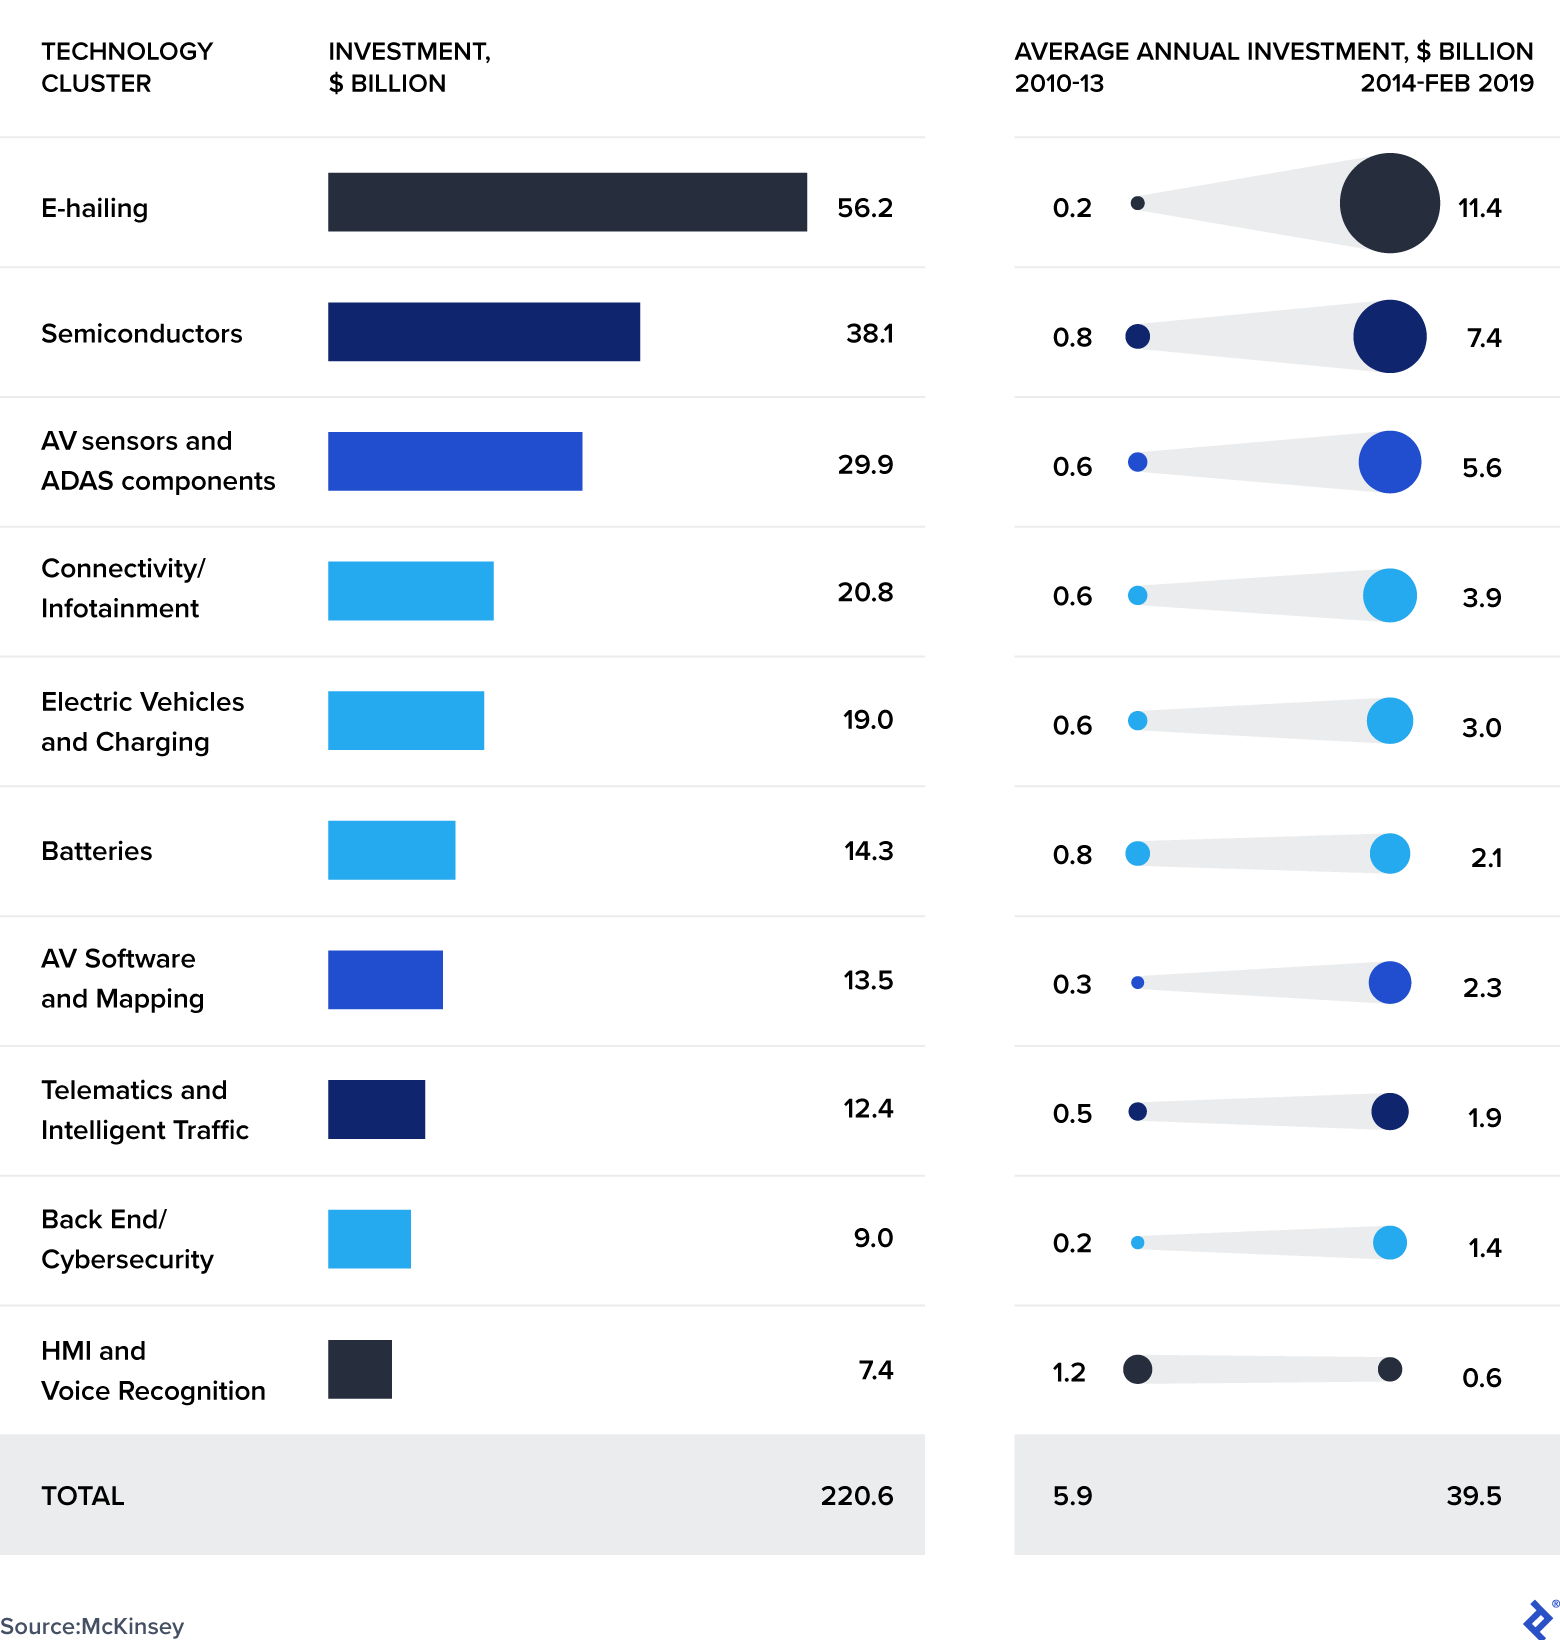 Automotive Investment by Emergent Sector: 2010-2019